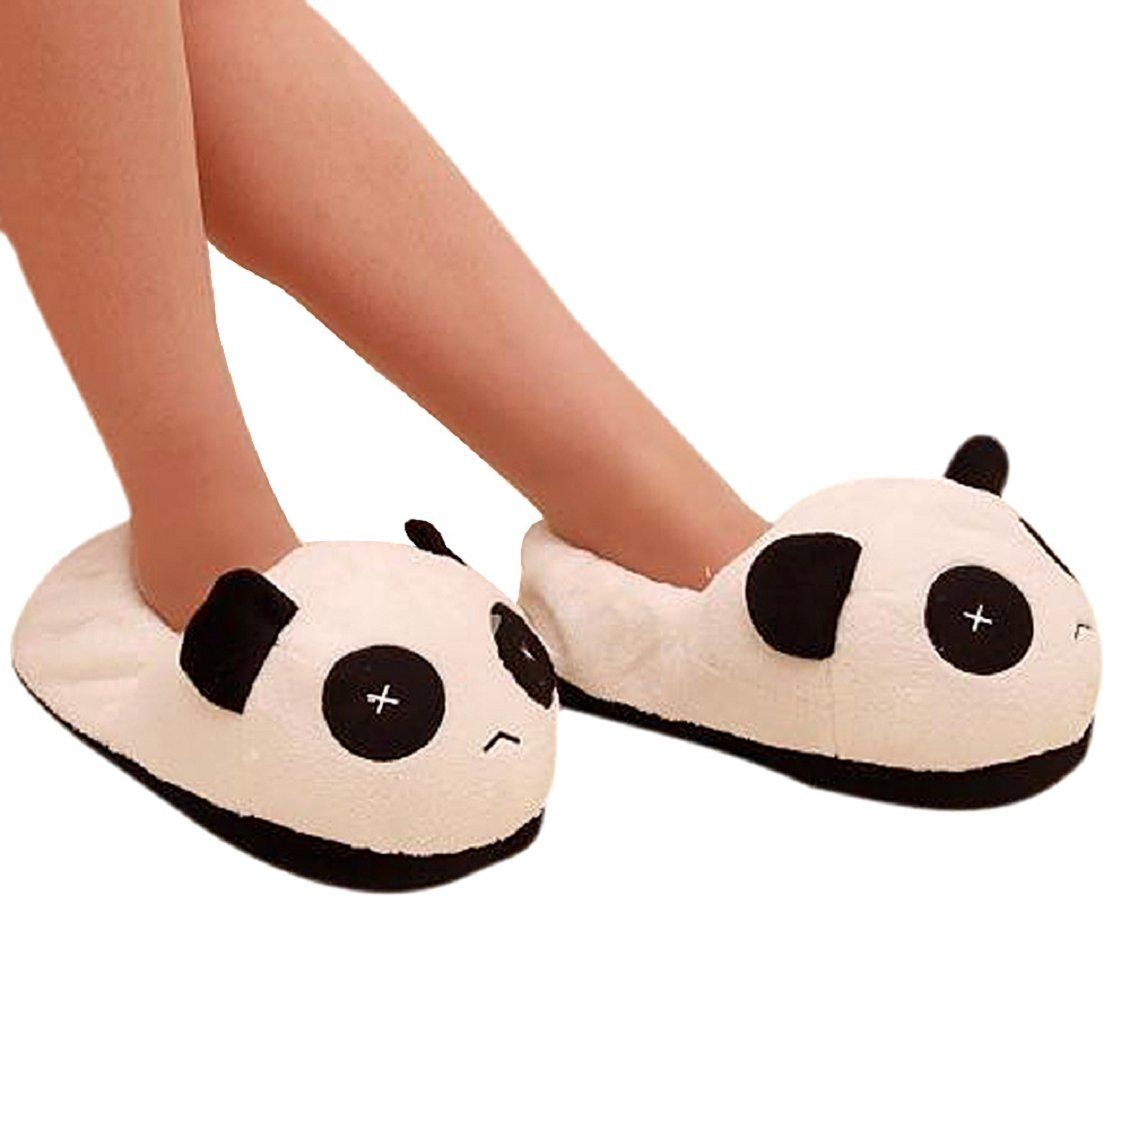 DCOS Black and white panda eyes crying face cotton slippers Men's Panda Plush Winter Non-slip Warm House Indoor Slippers